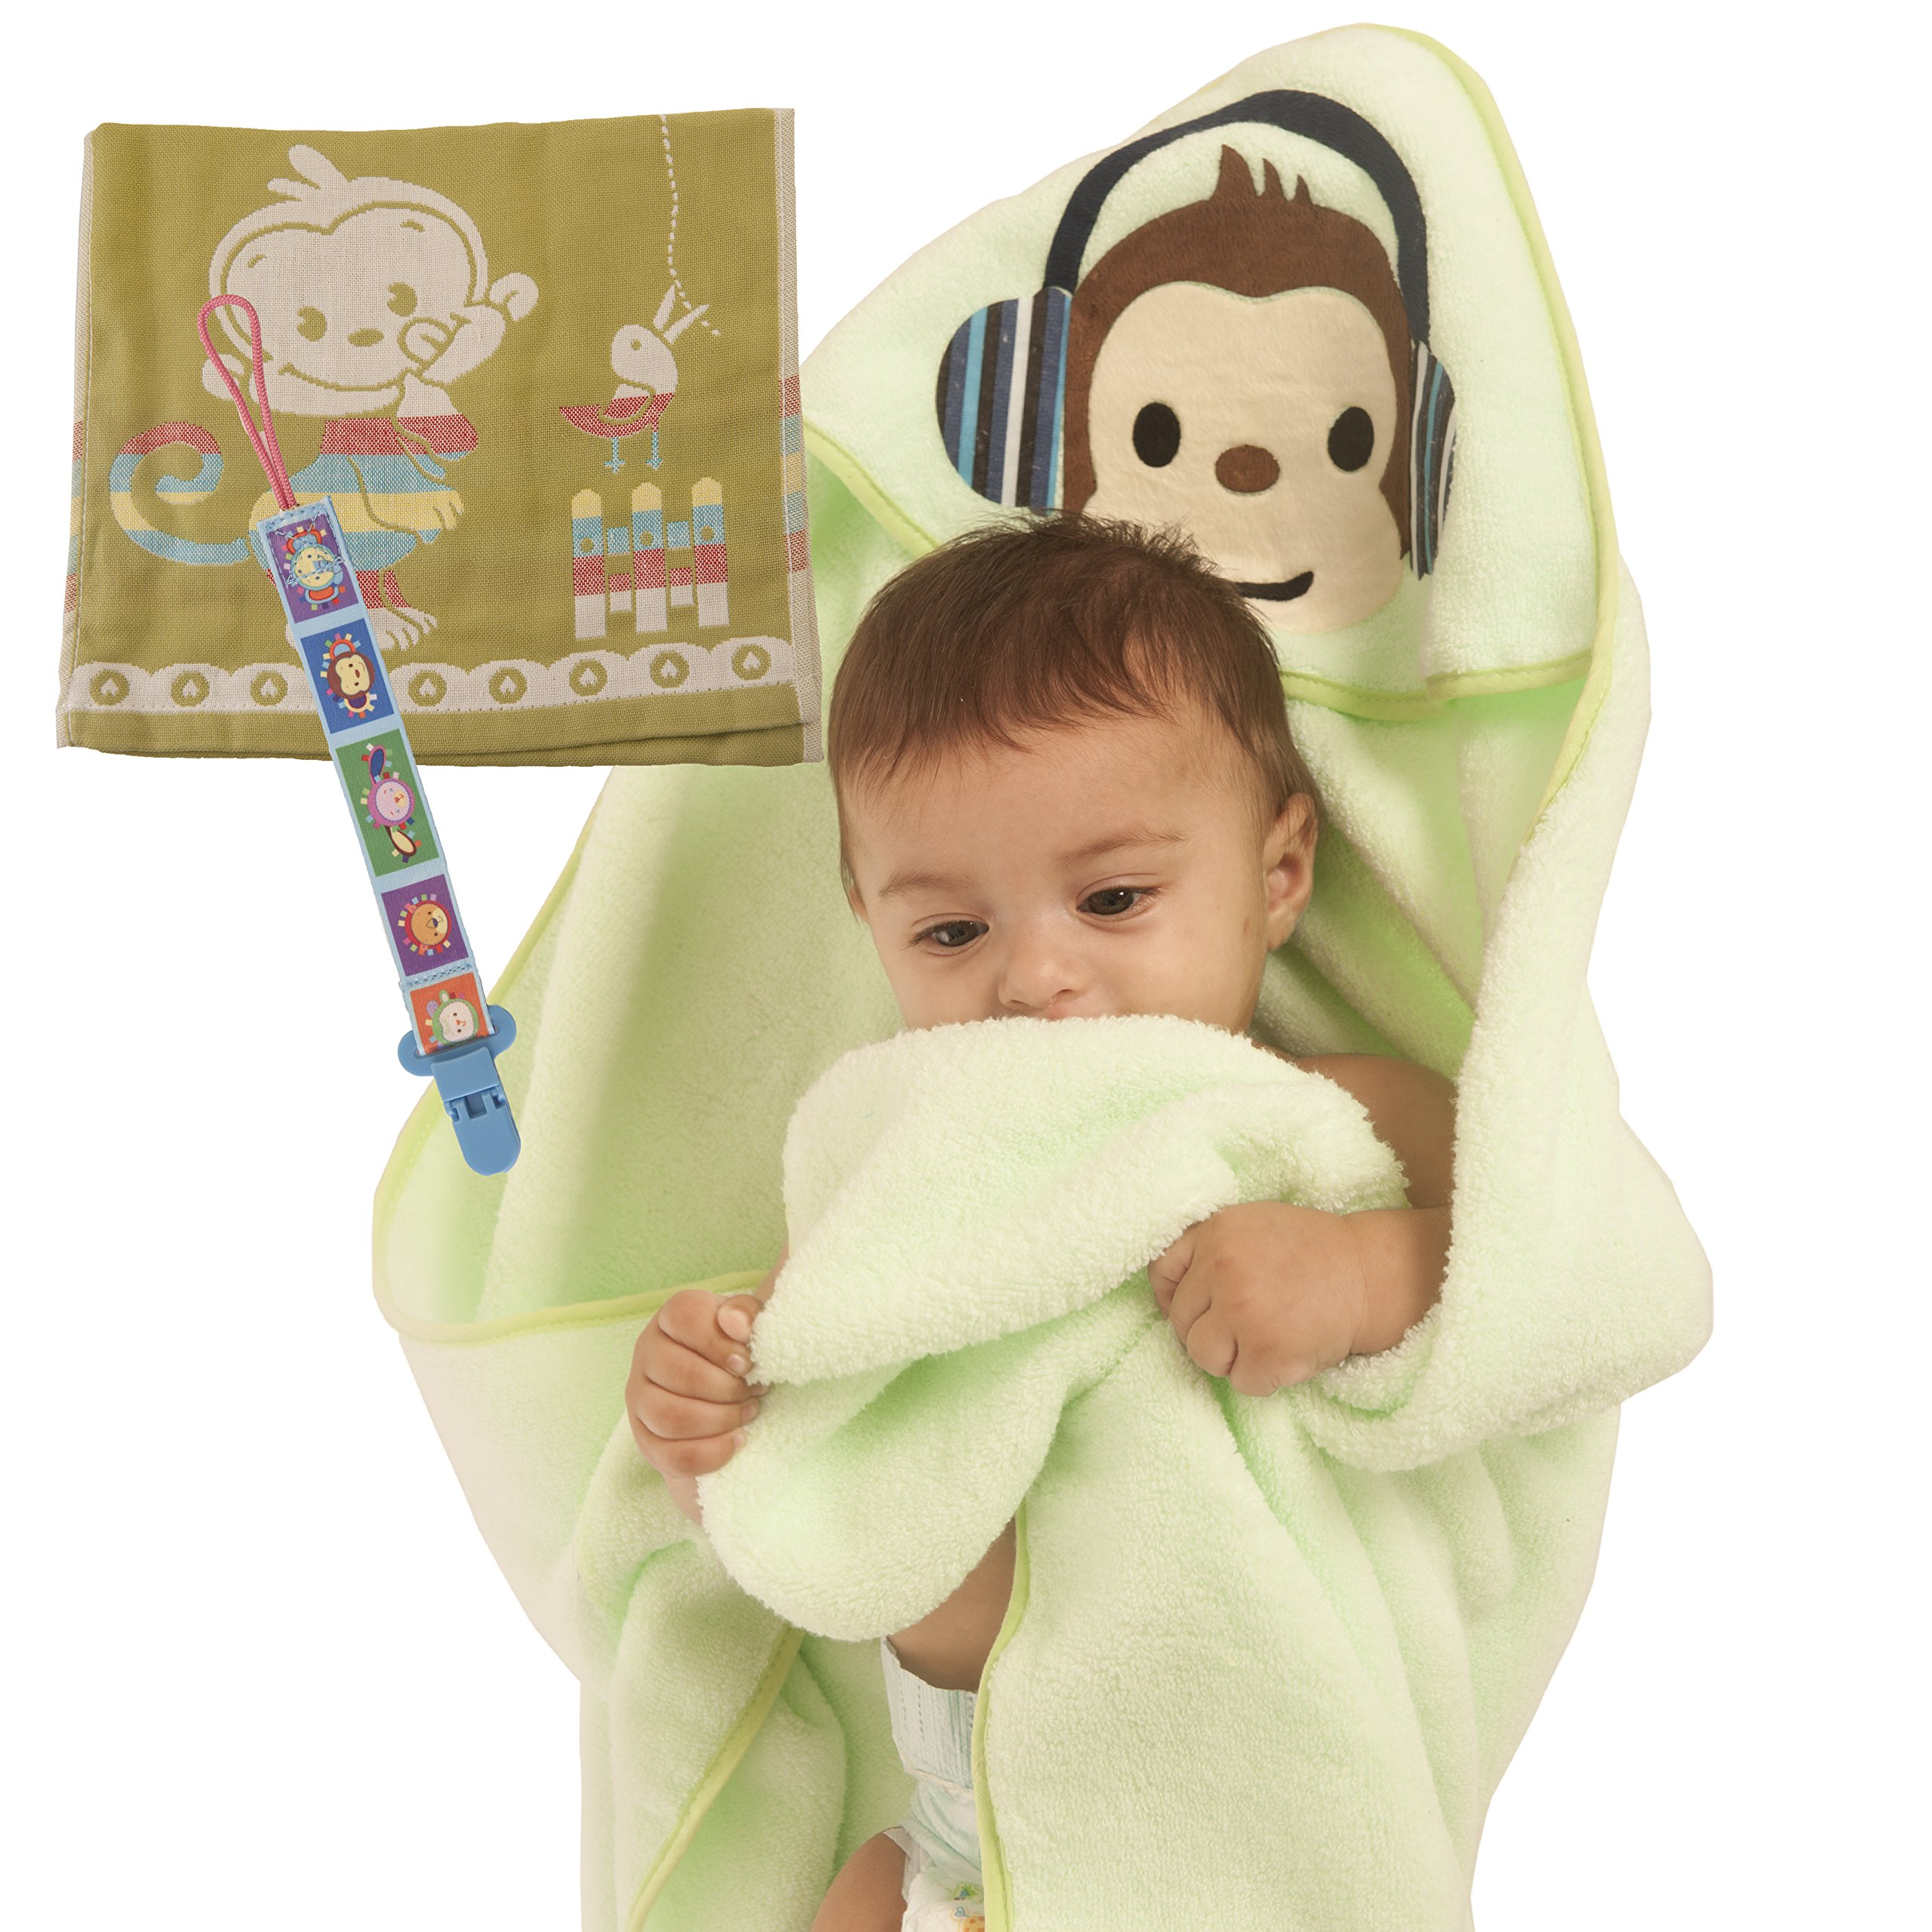 Premium Hooded Baby Bath Towel For Boys & Girls: Perfect Baby Shower Gift Set Ultra Soft Absorbent Cotton, Newborn & Toddler Wrap